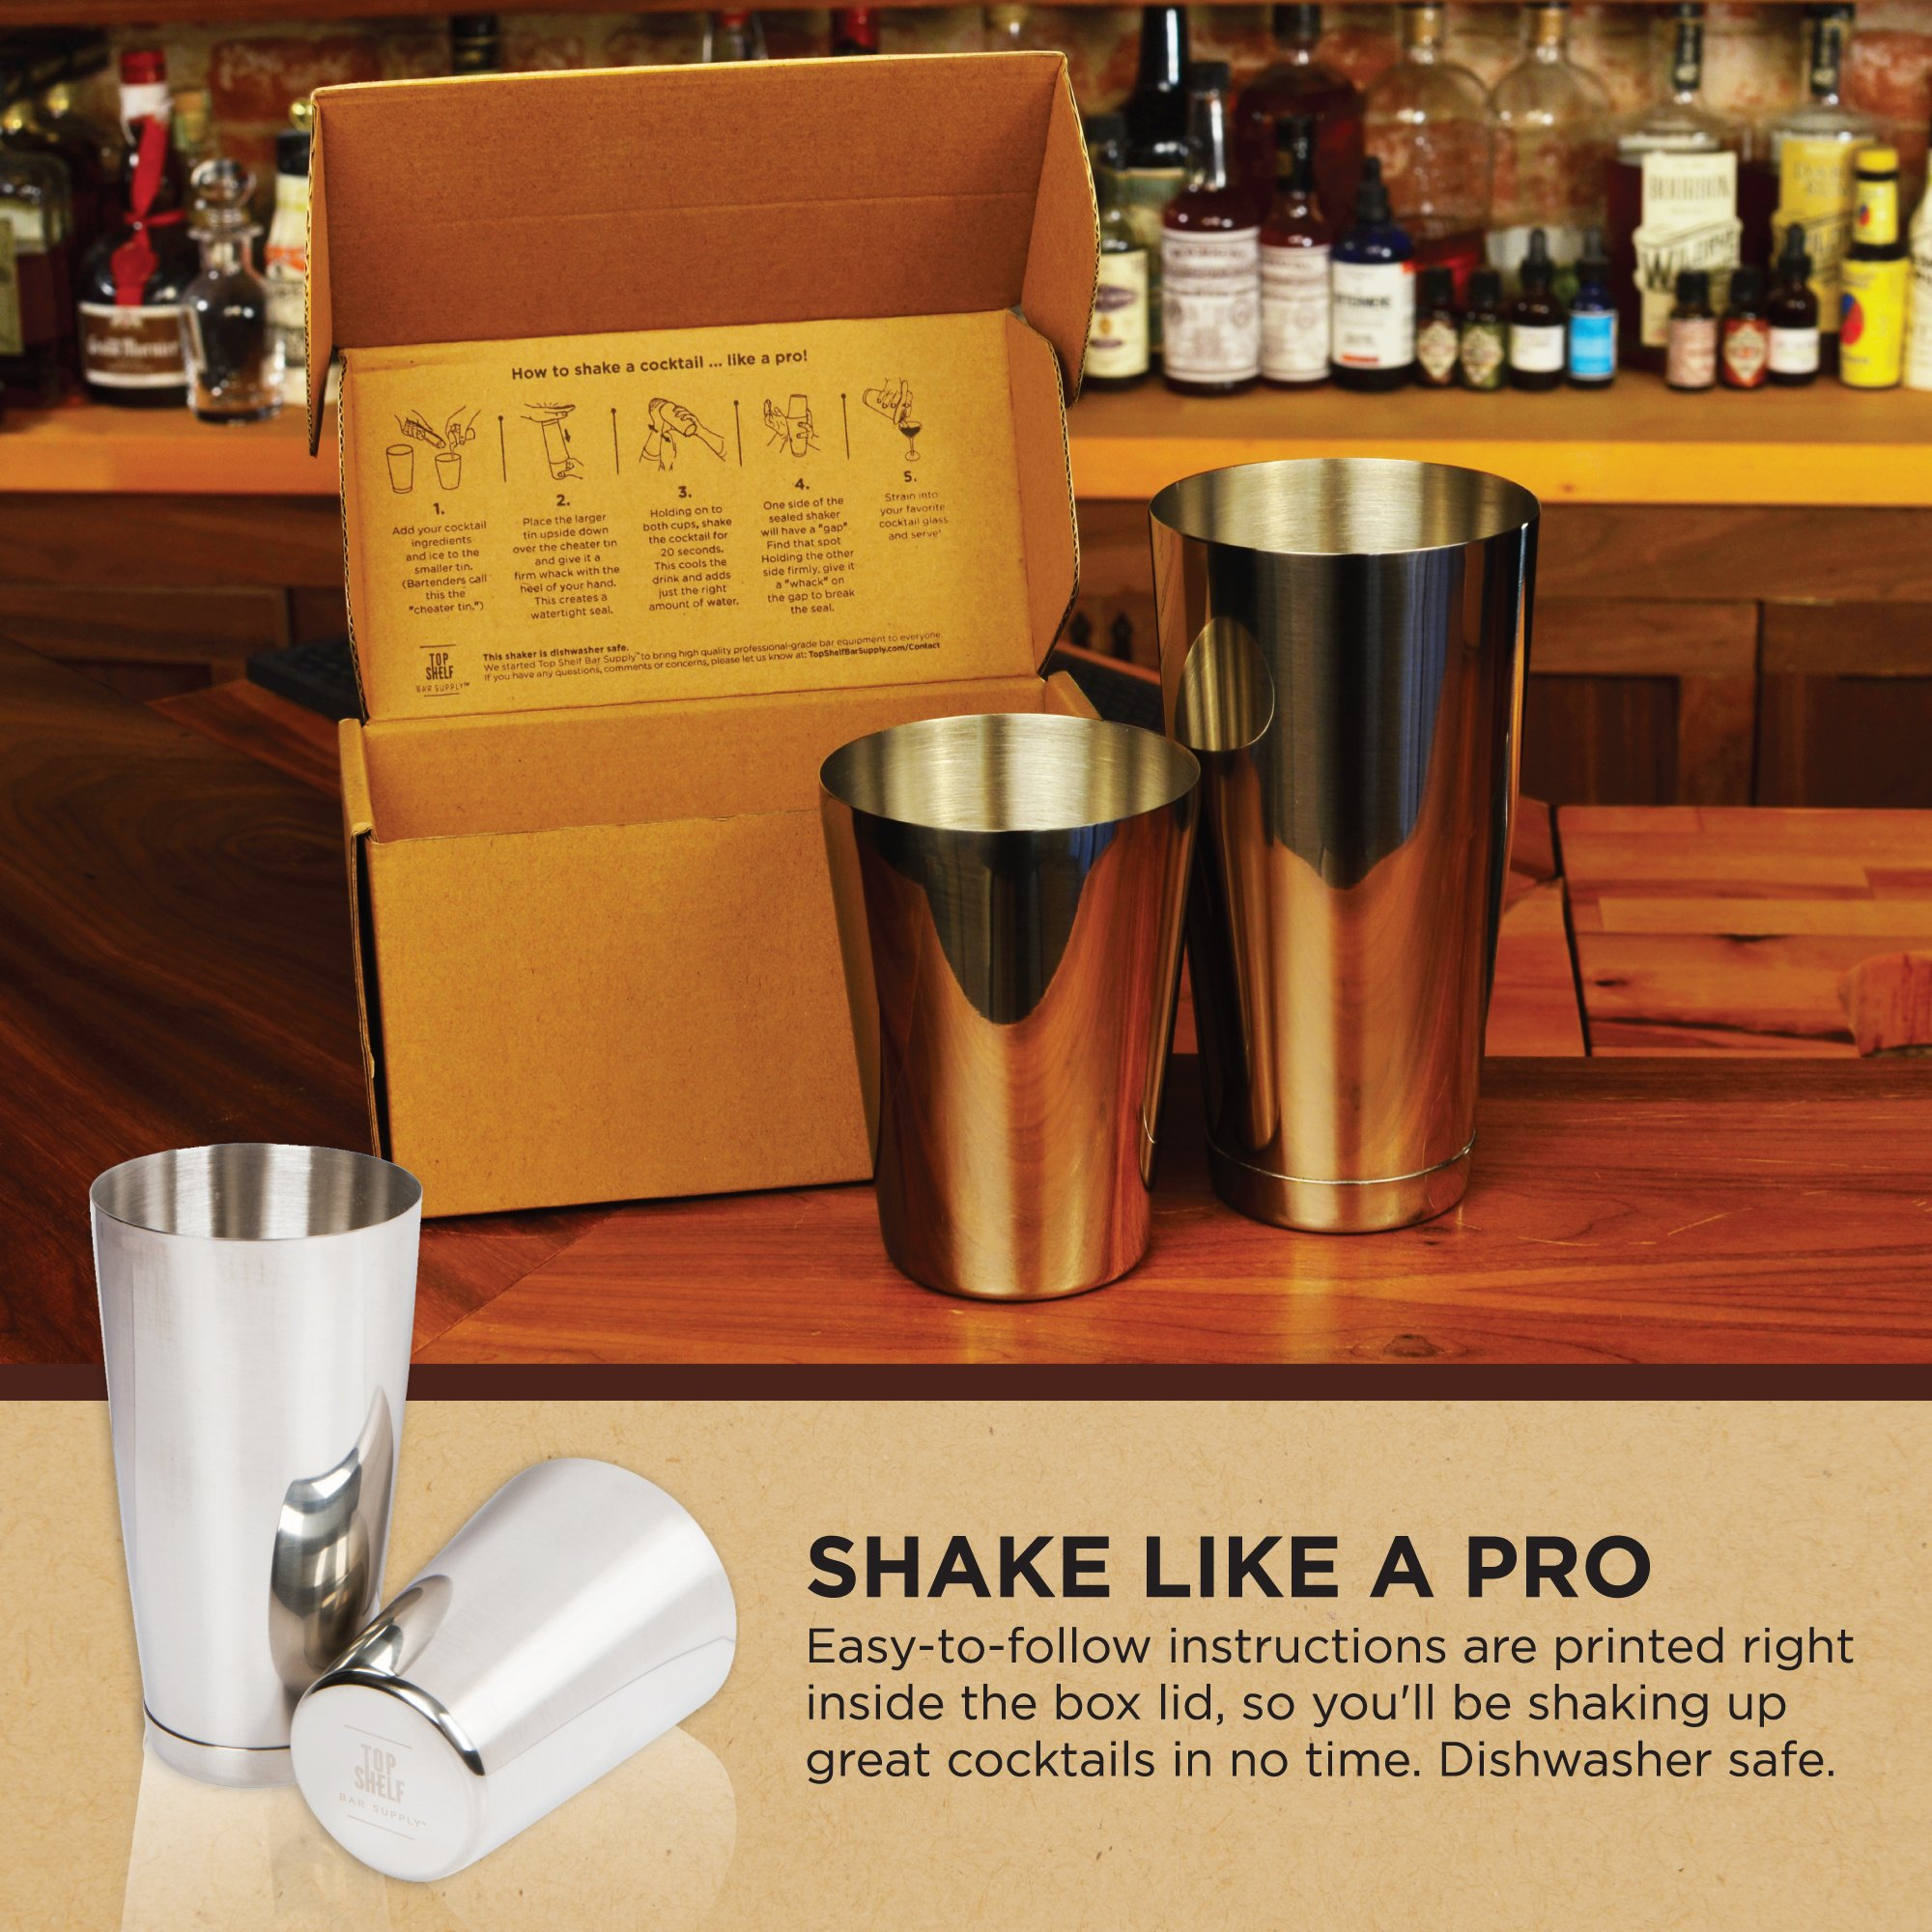 Stainless Steel Boston Shaker: 2-piece Set: 18oz Unweighted & 28oz Weighted Professional Bartender Cocktail Shaker by Top Shelf Bar Supply (Image #8)